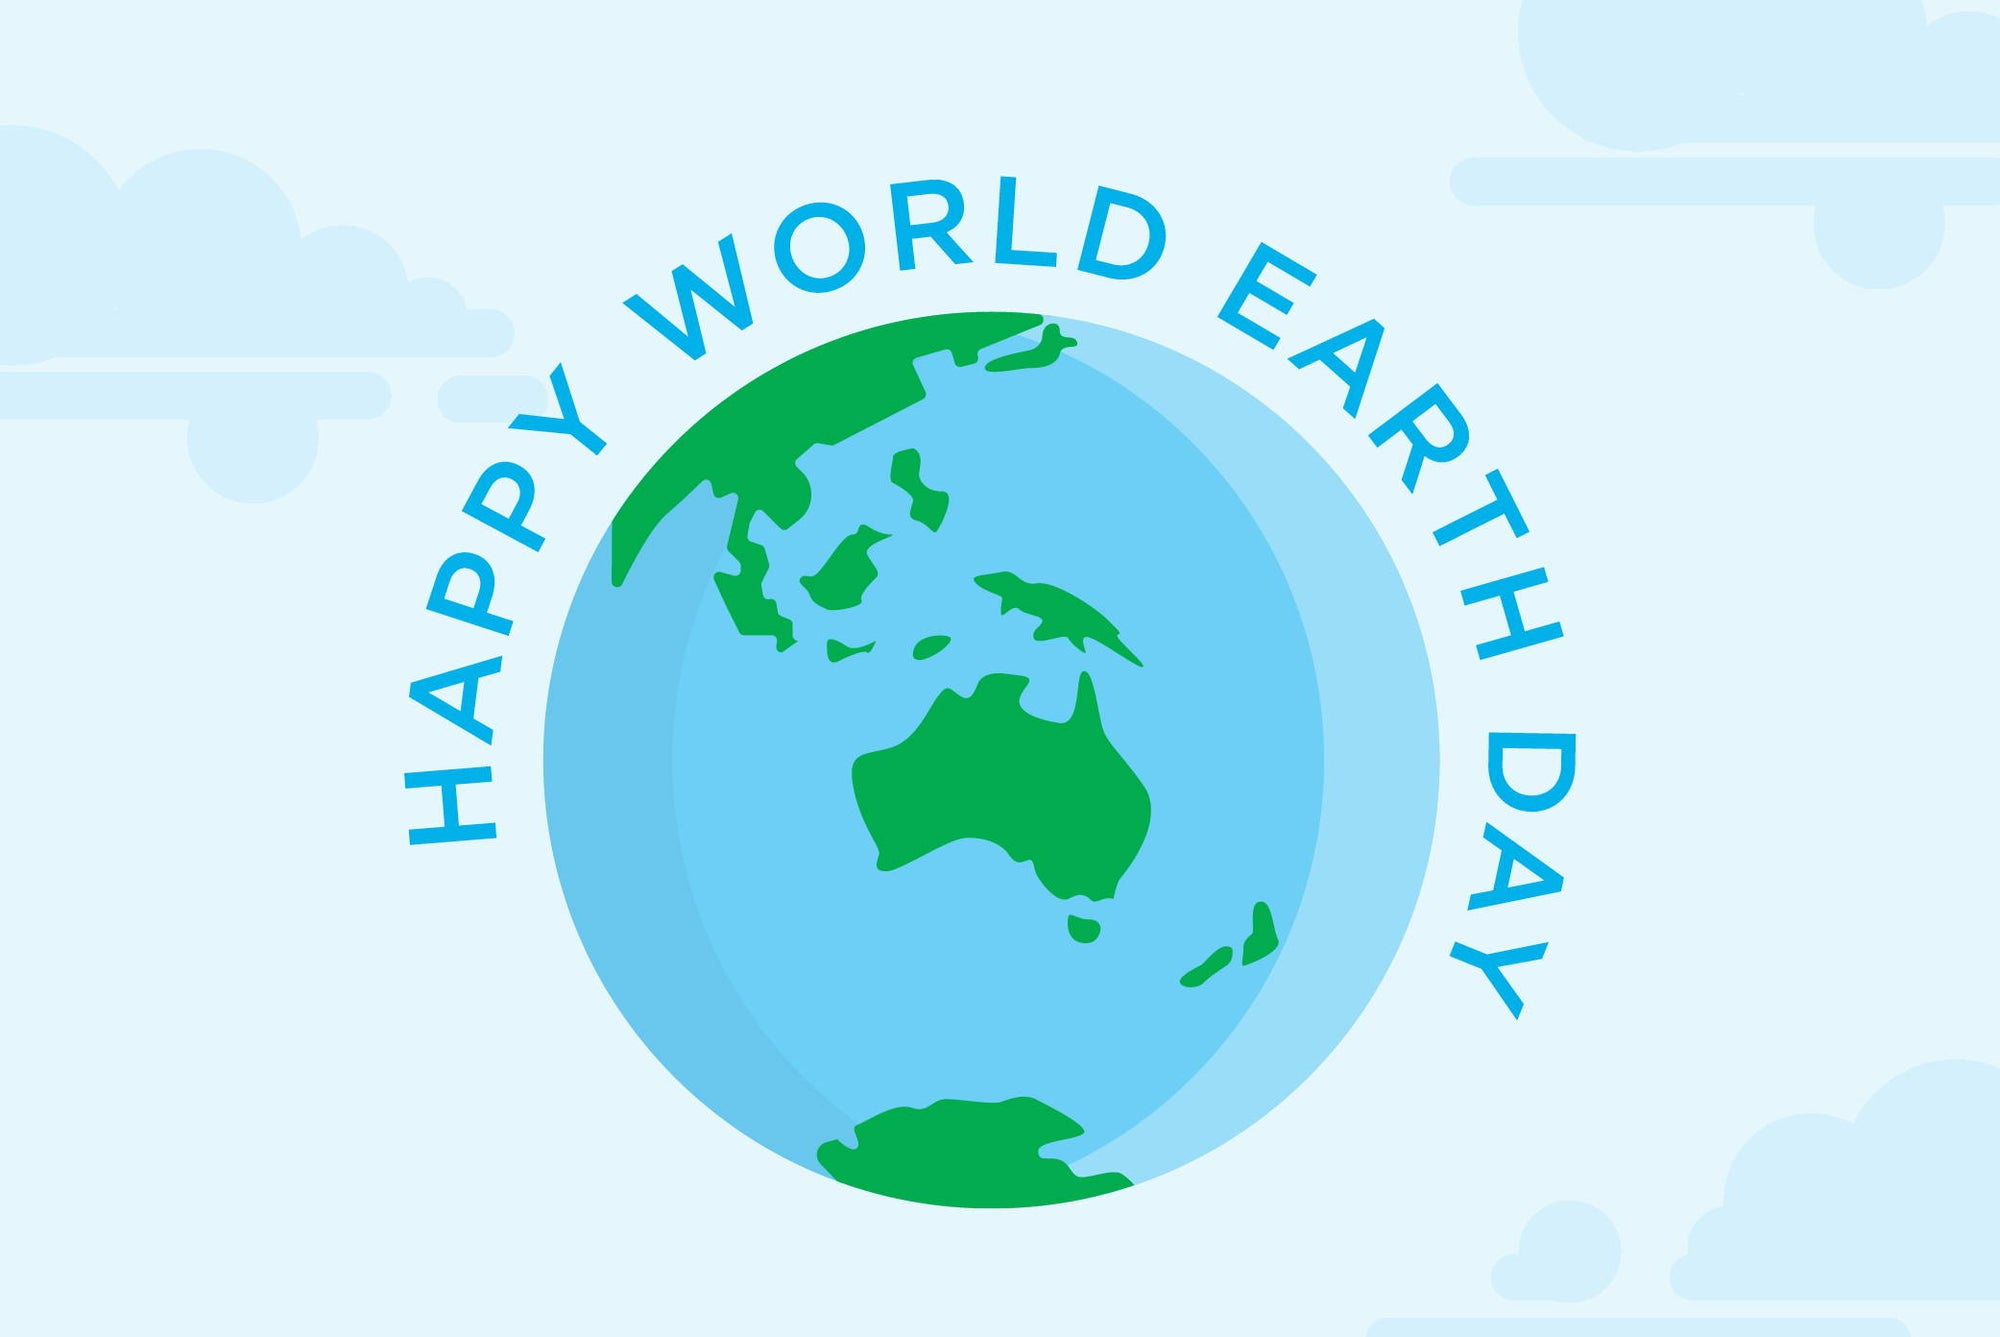 Celebrate World Earth Day